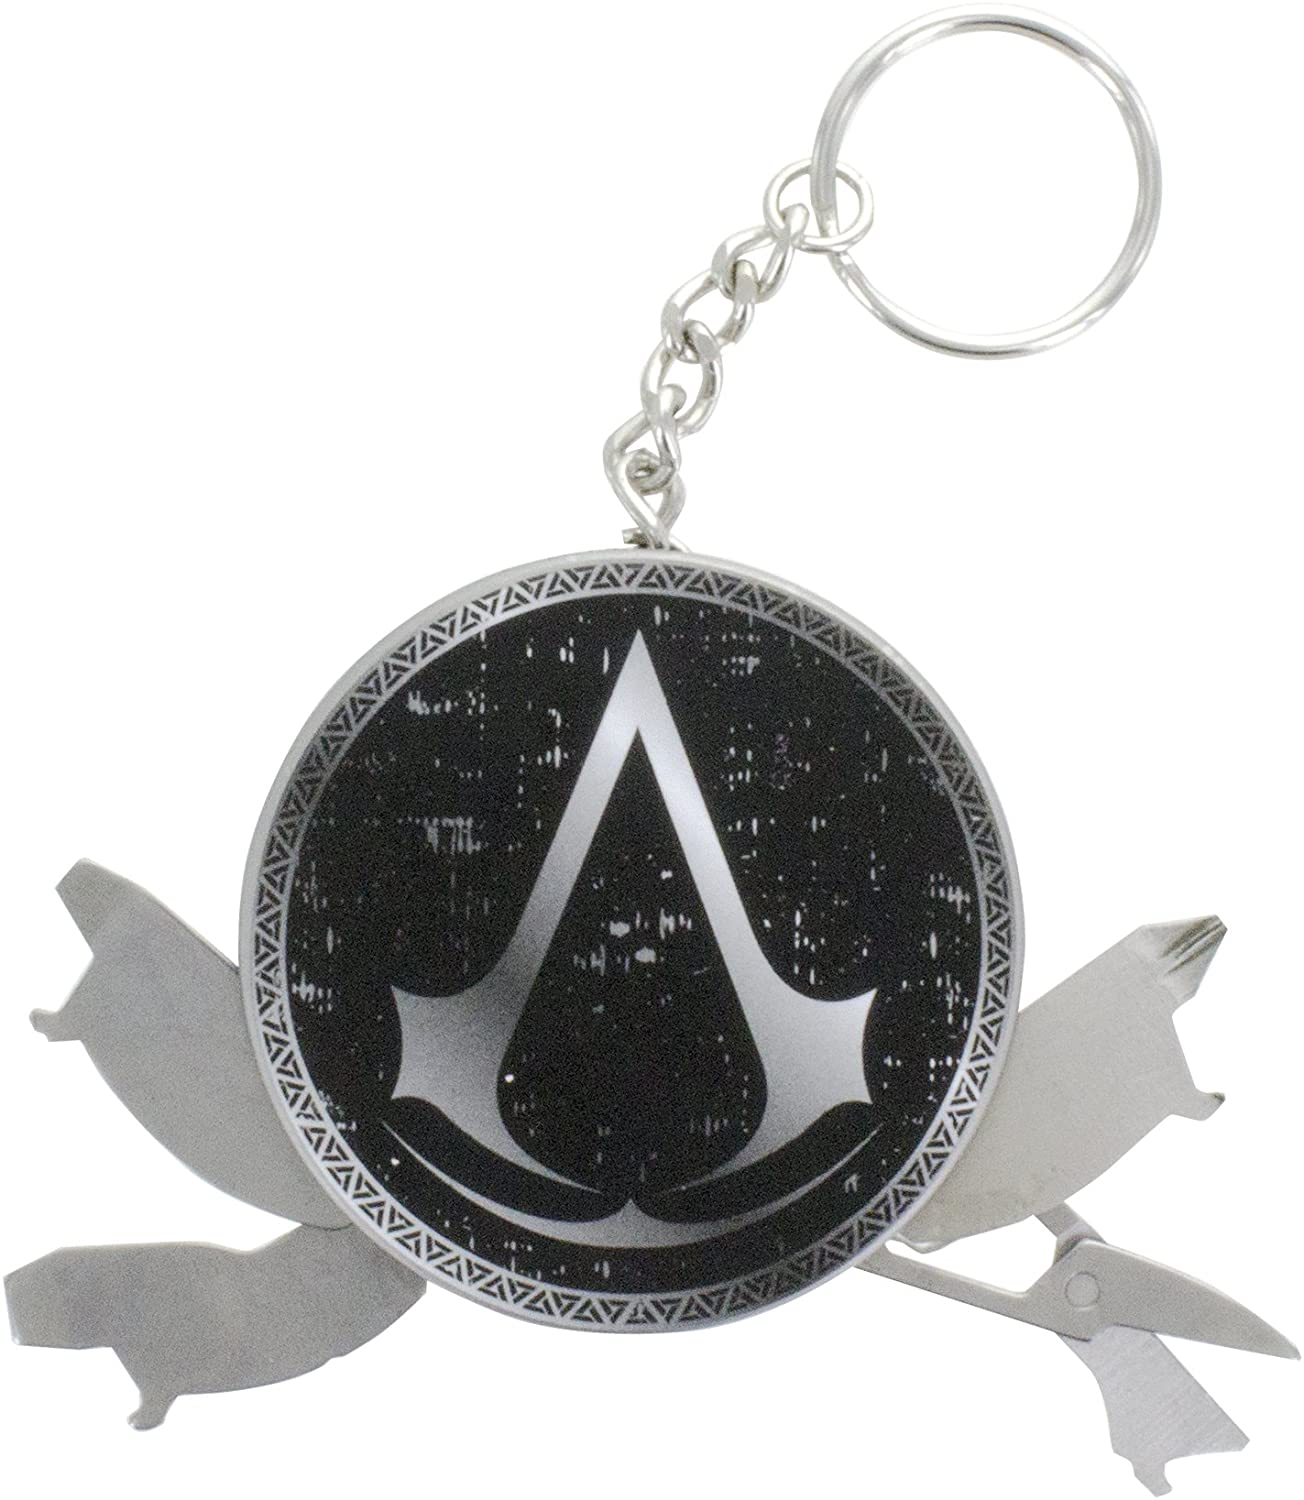 KEYCHAIN ASSASSINS CREED (4 IN 1 MULTI TOOL)